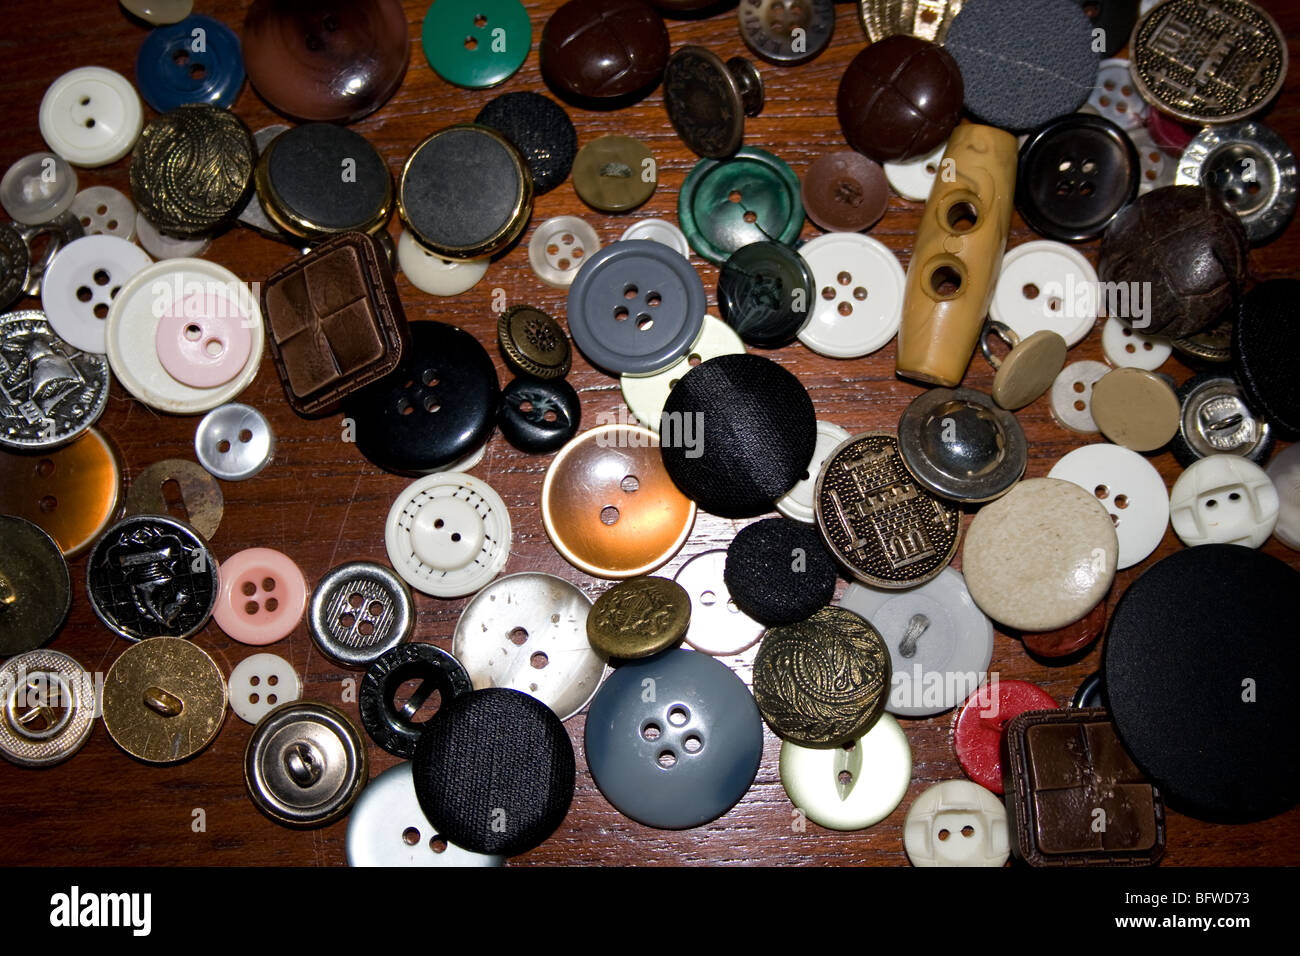 Collection of buttons - Stock Image